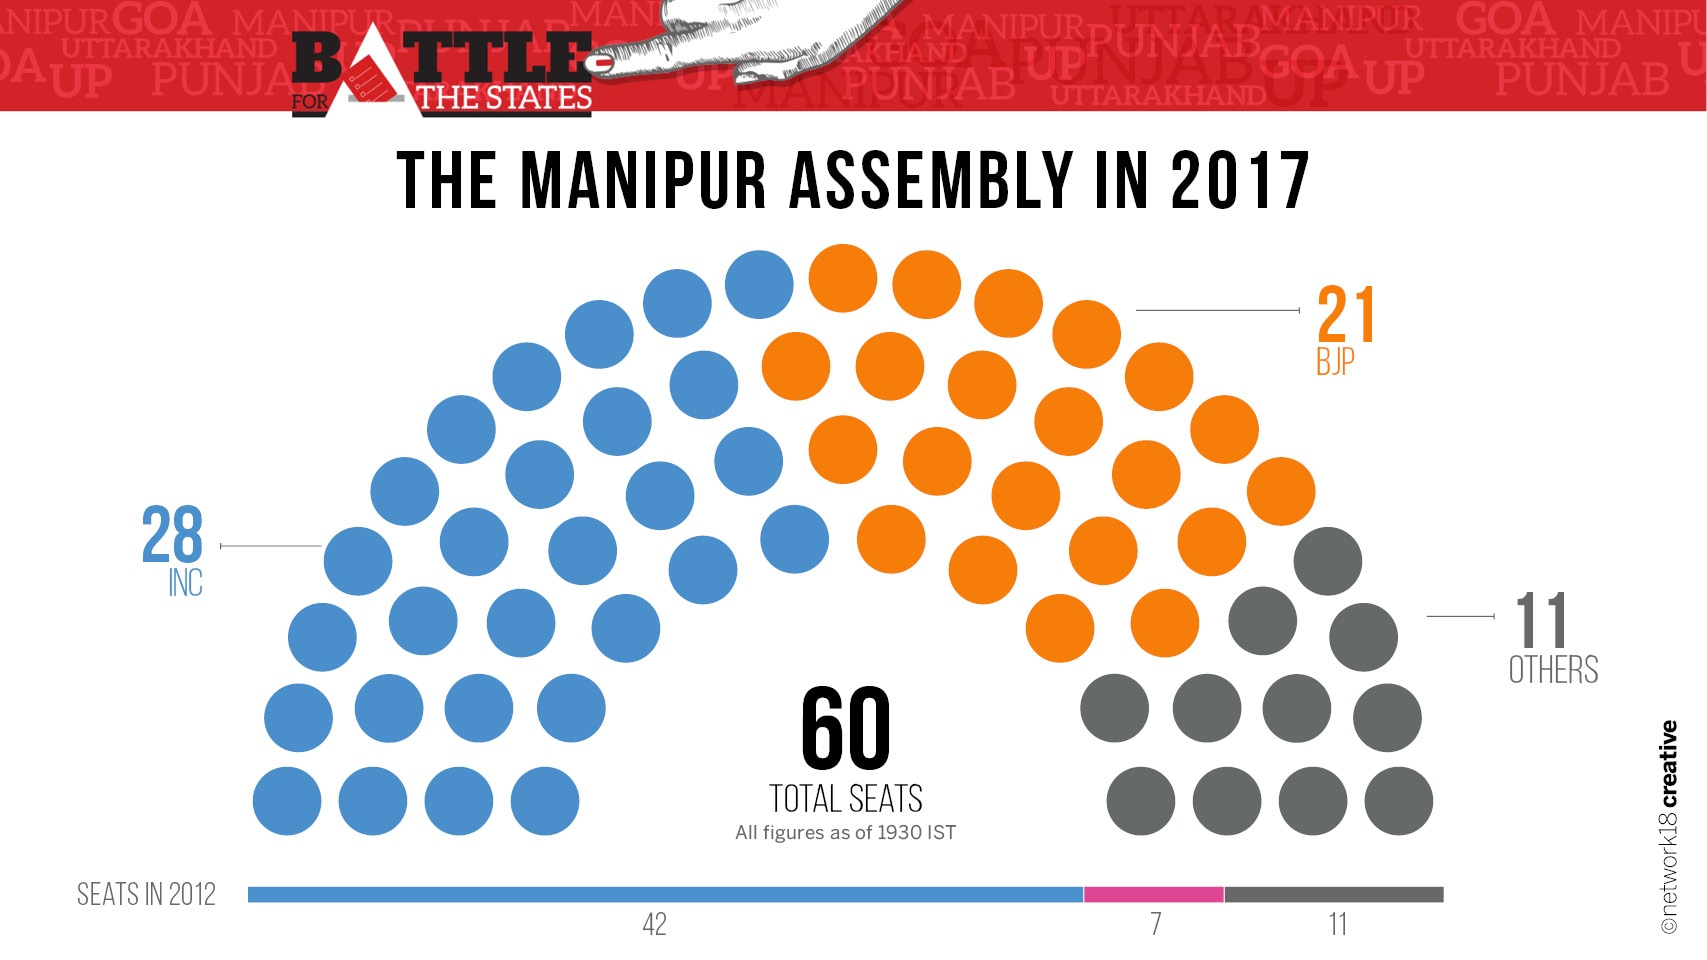 Party Seating 2017 Manipur